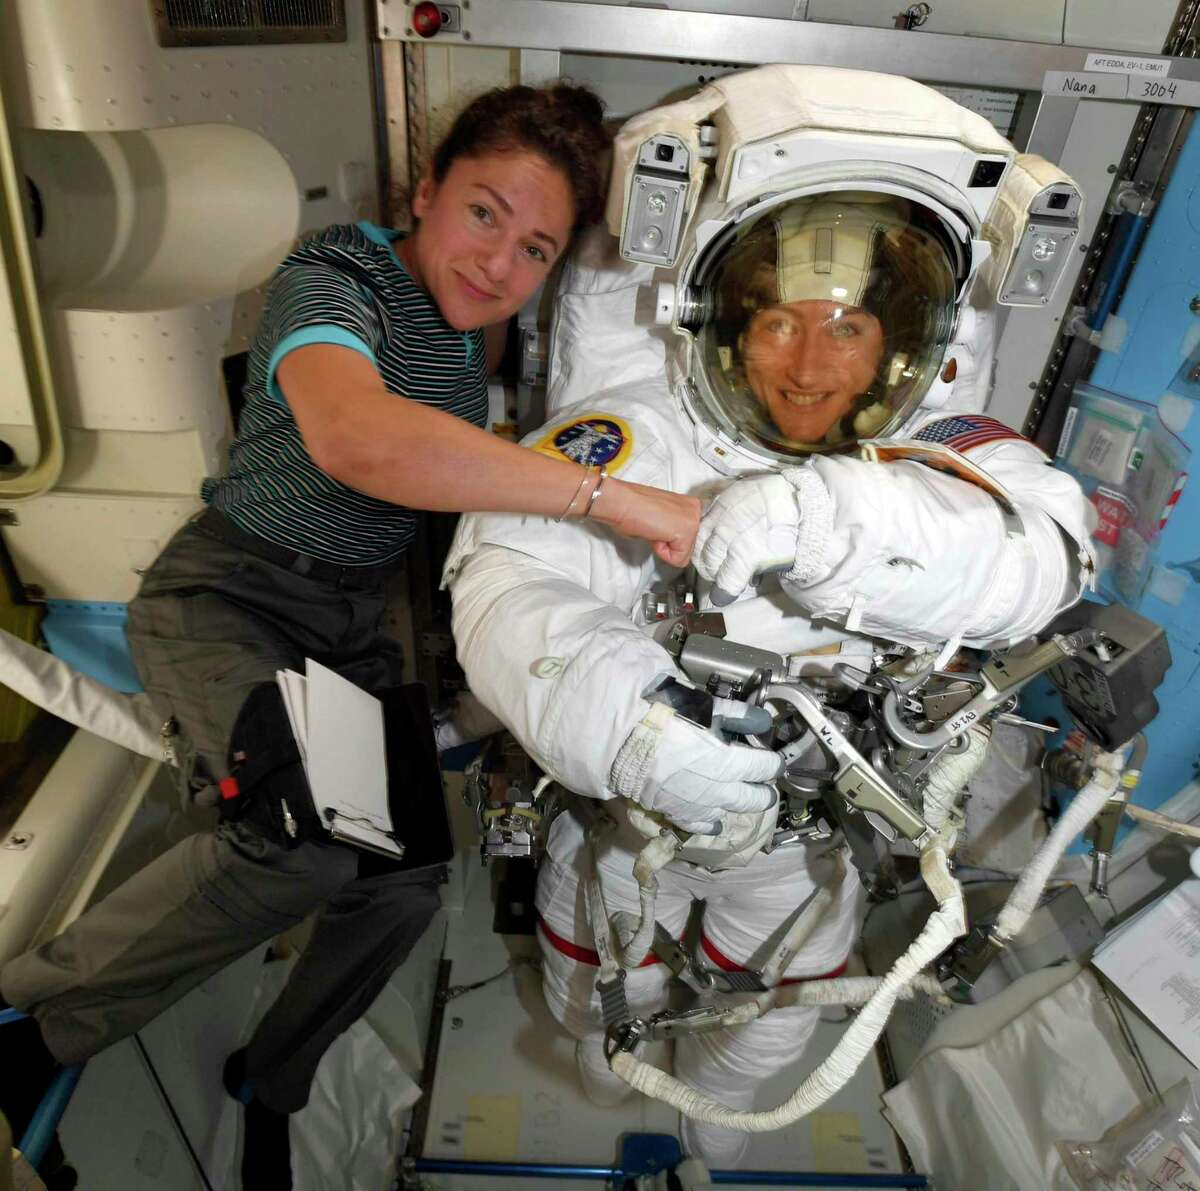 In this image released Friday, Oct. 4, 2019, by NASA, astronauts Christina Koch, right, and, Jessica Meir pose on the International Space Station. They completed the first all-female spacewalk on Oct. 18, 2019. (NASA via AP)